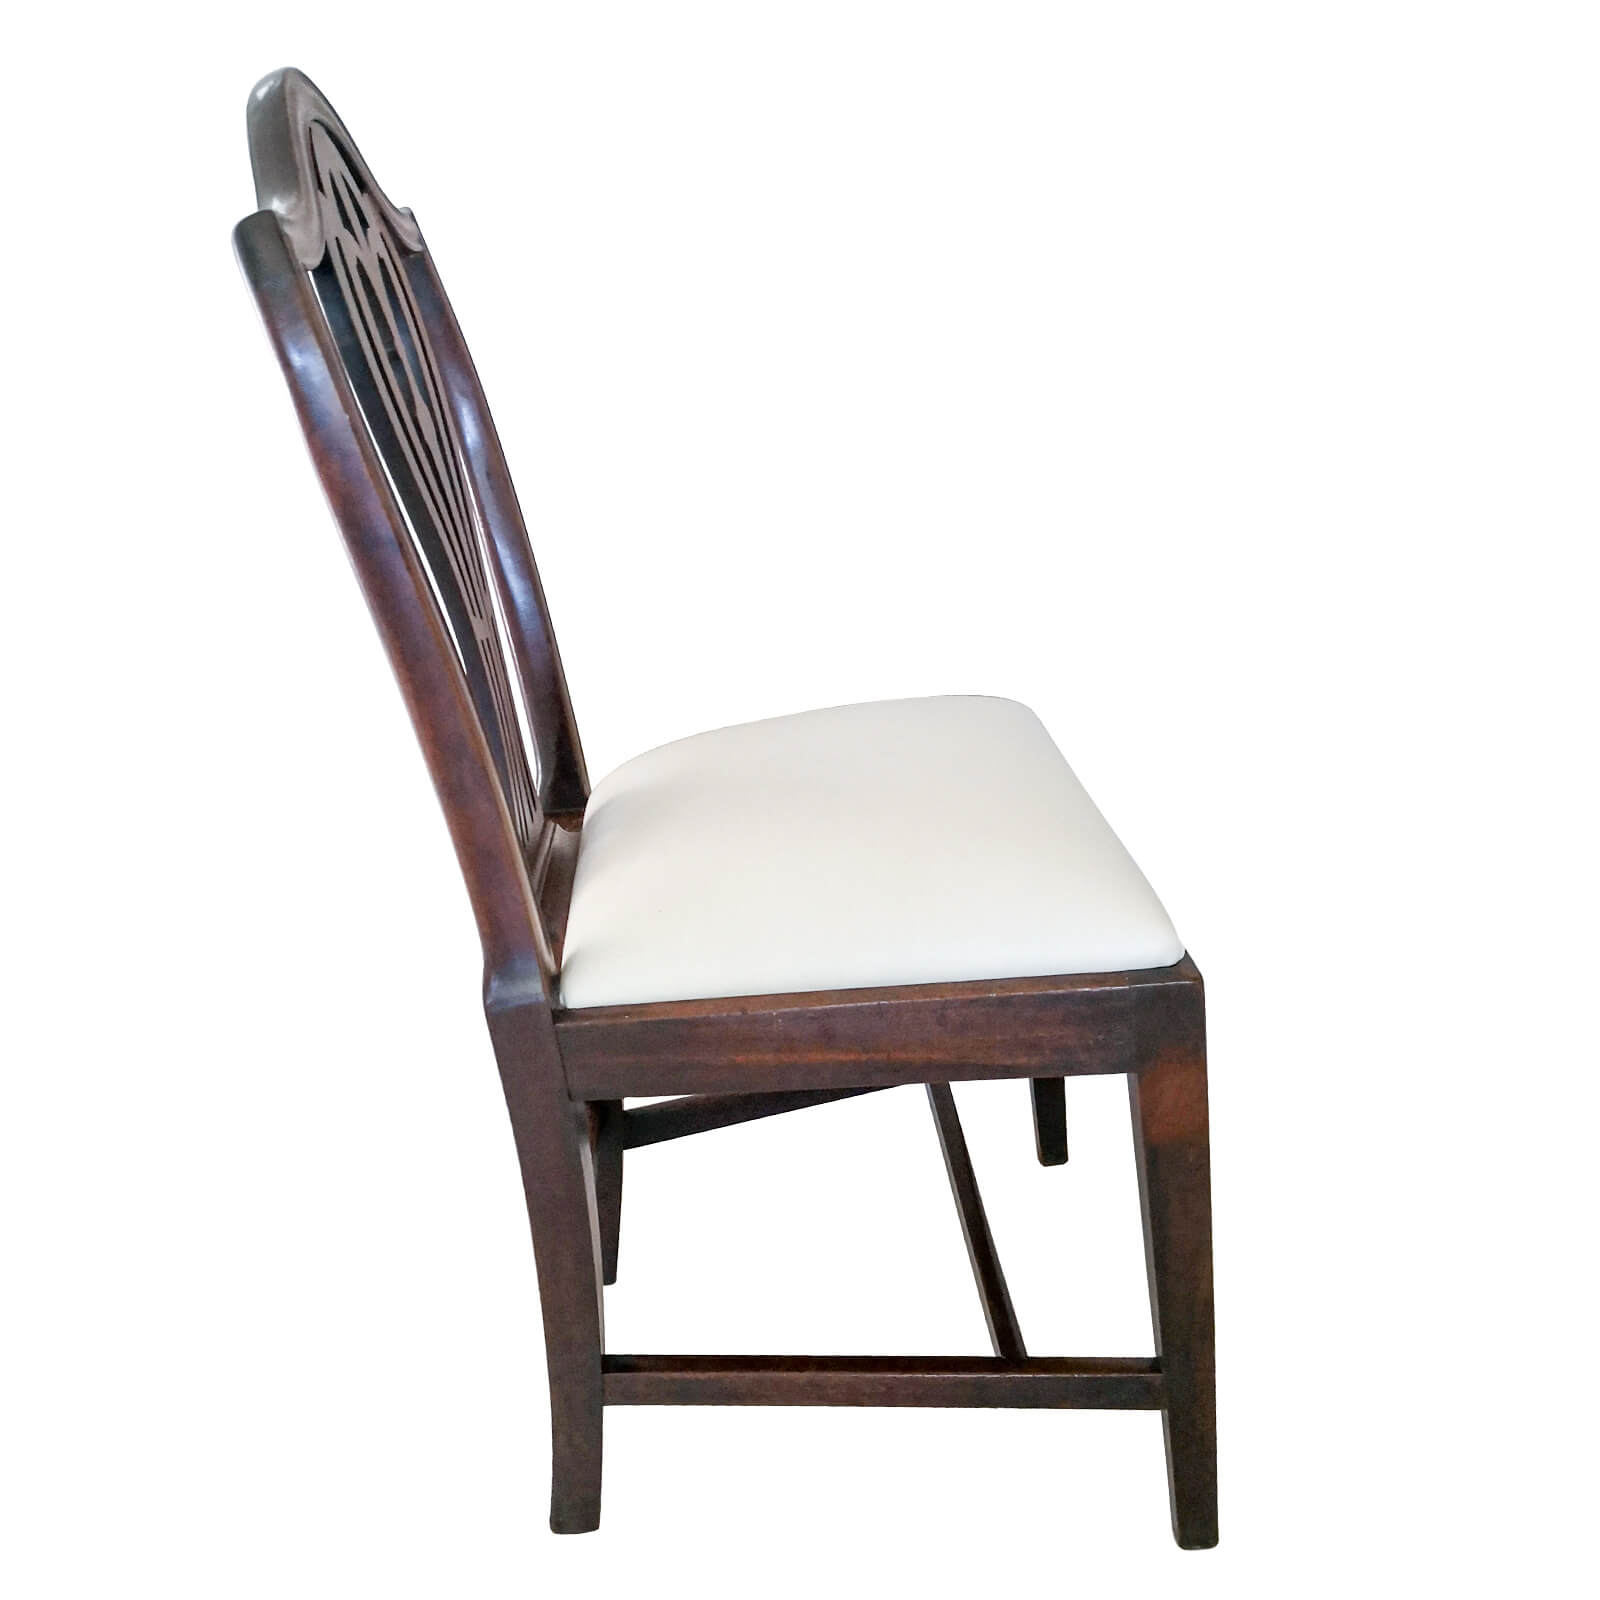 two-design-lovers-Antique-Georgian-pair-of-dining-chairs-side